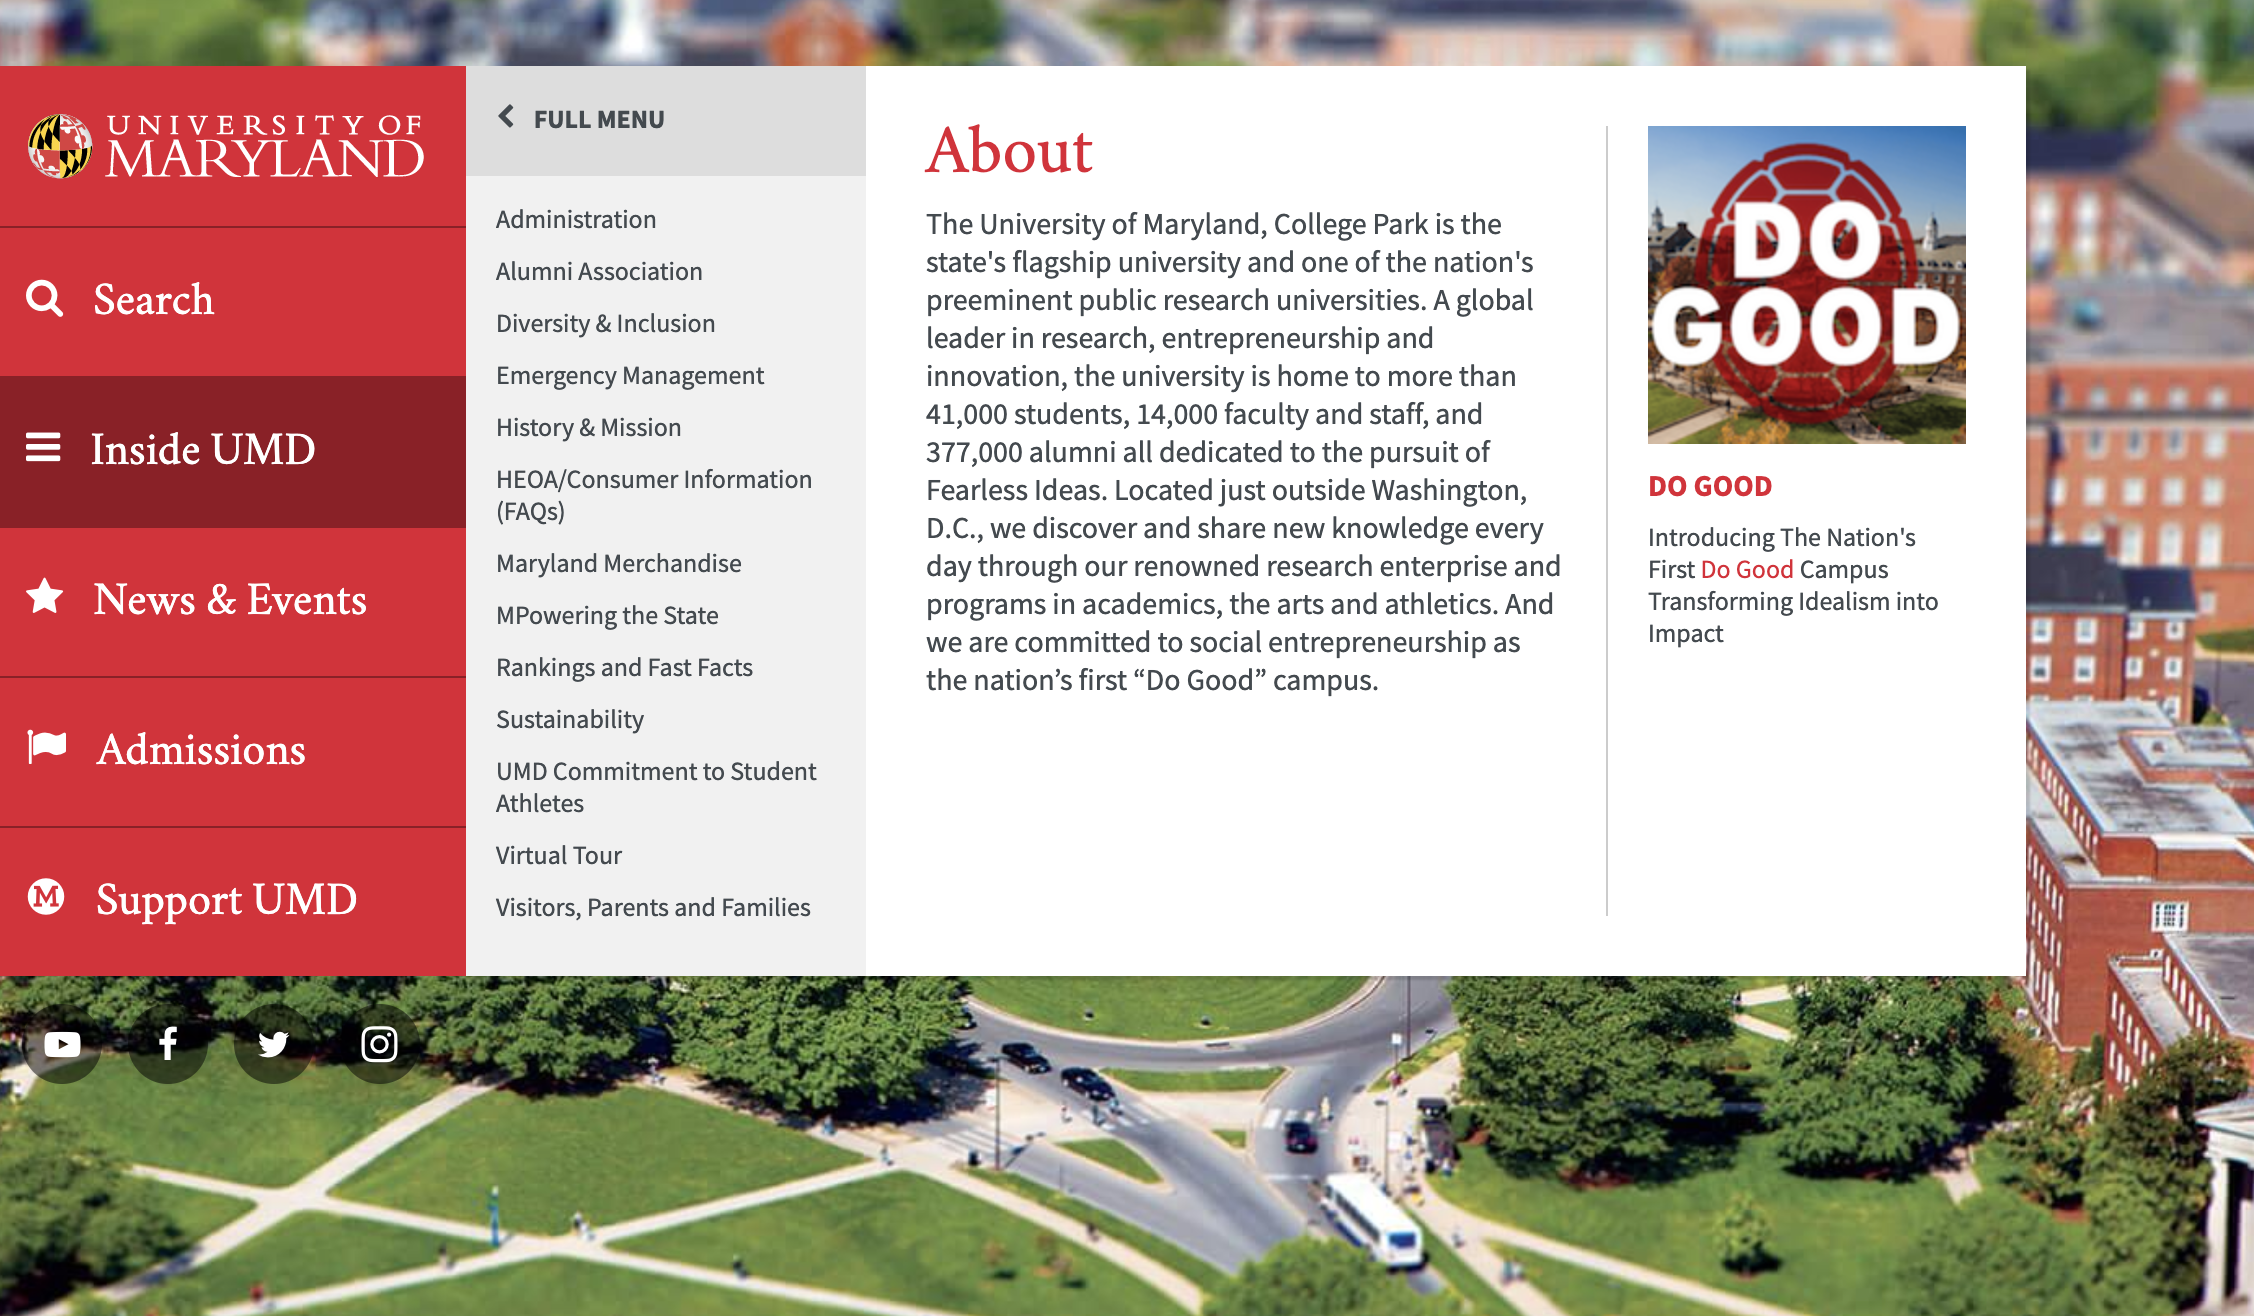 University of Maryland website header